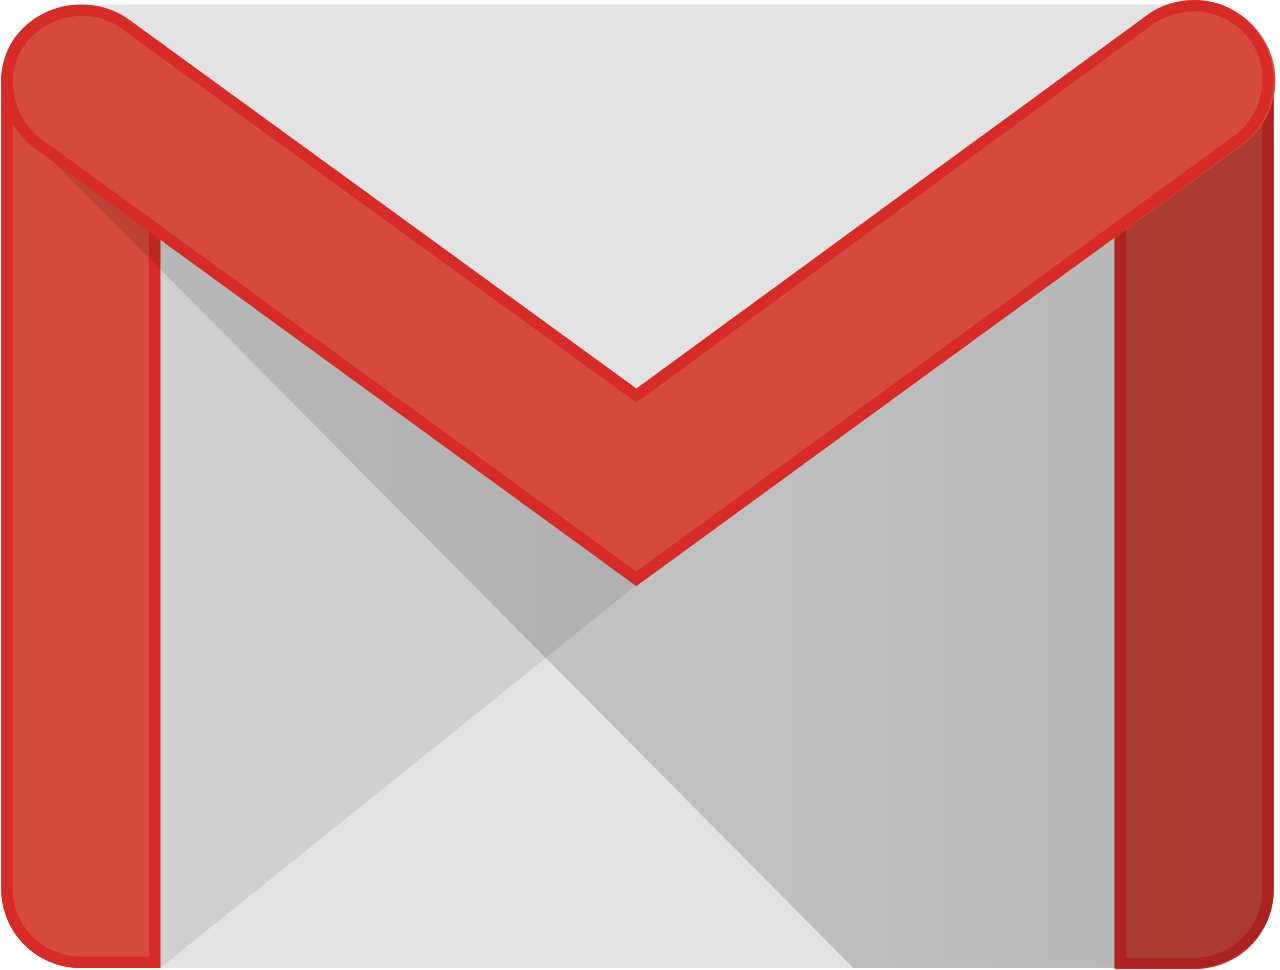 Having problems signing into my gmail account.